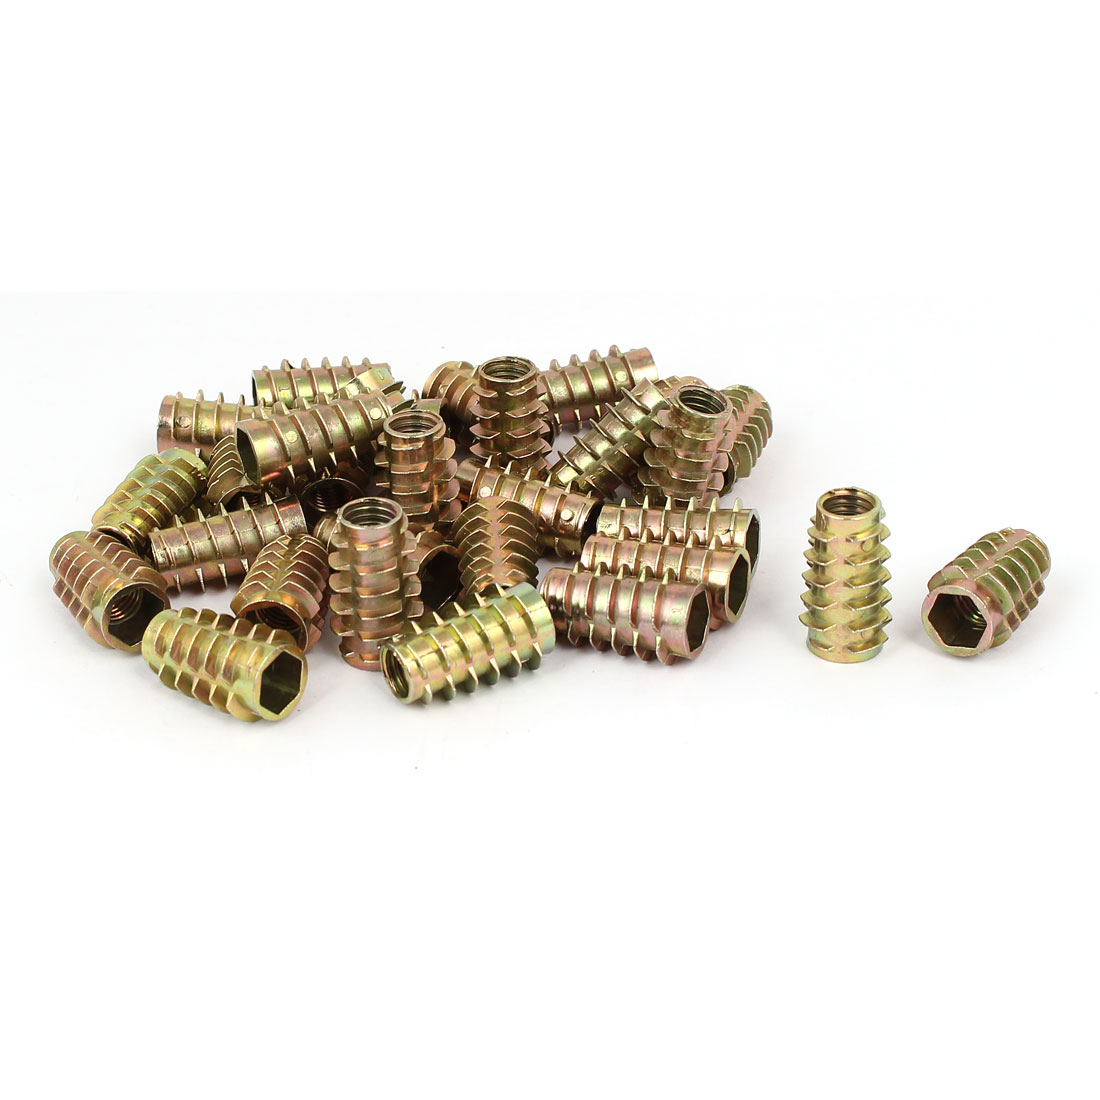 Wood Furniture Zinc Alloy Hex Socket Insert Screws E-Nuts M8x25mm 30pcs